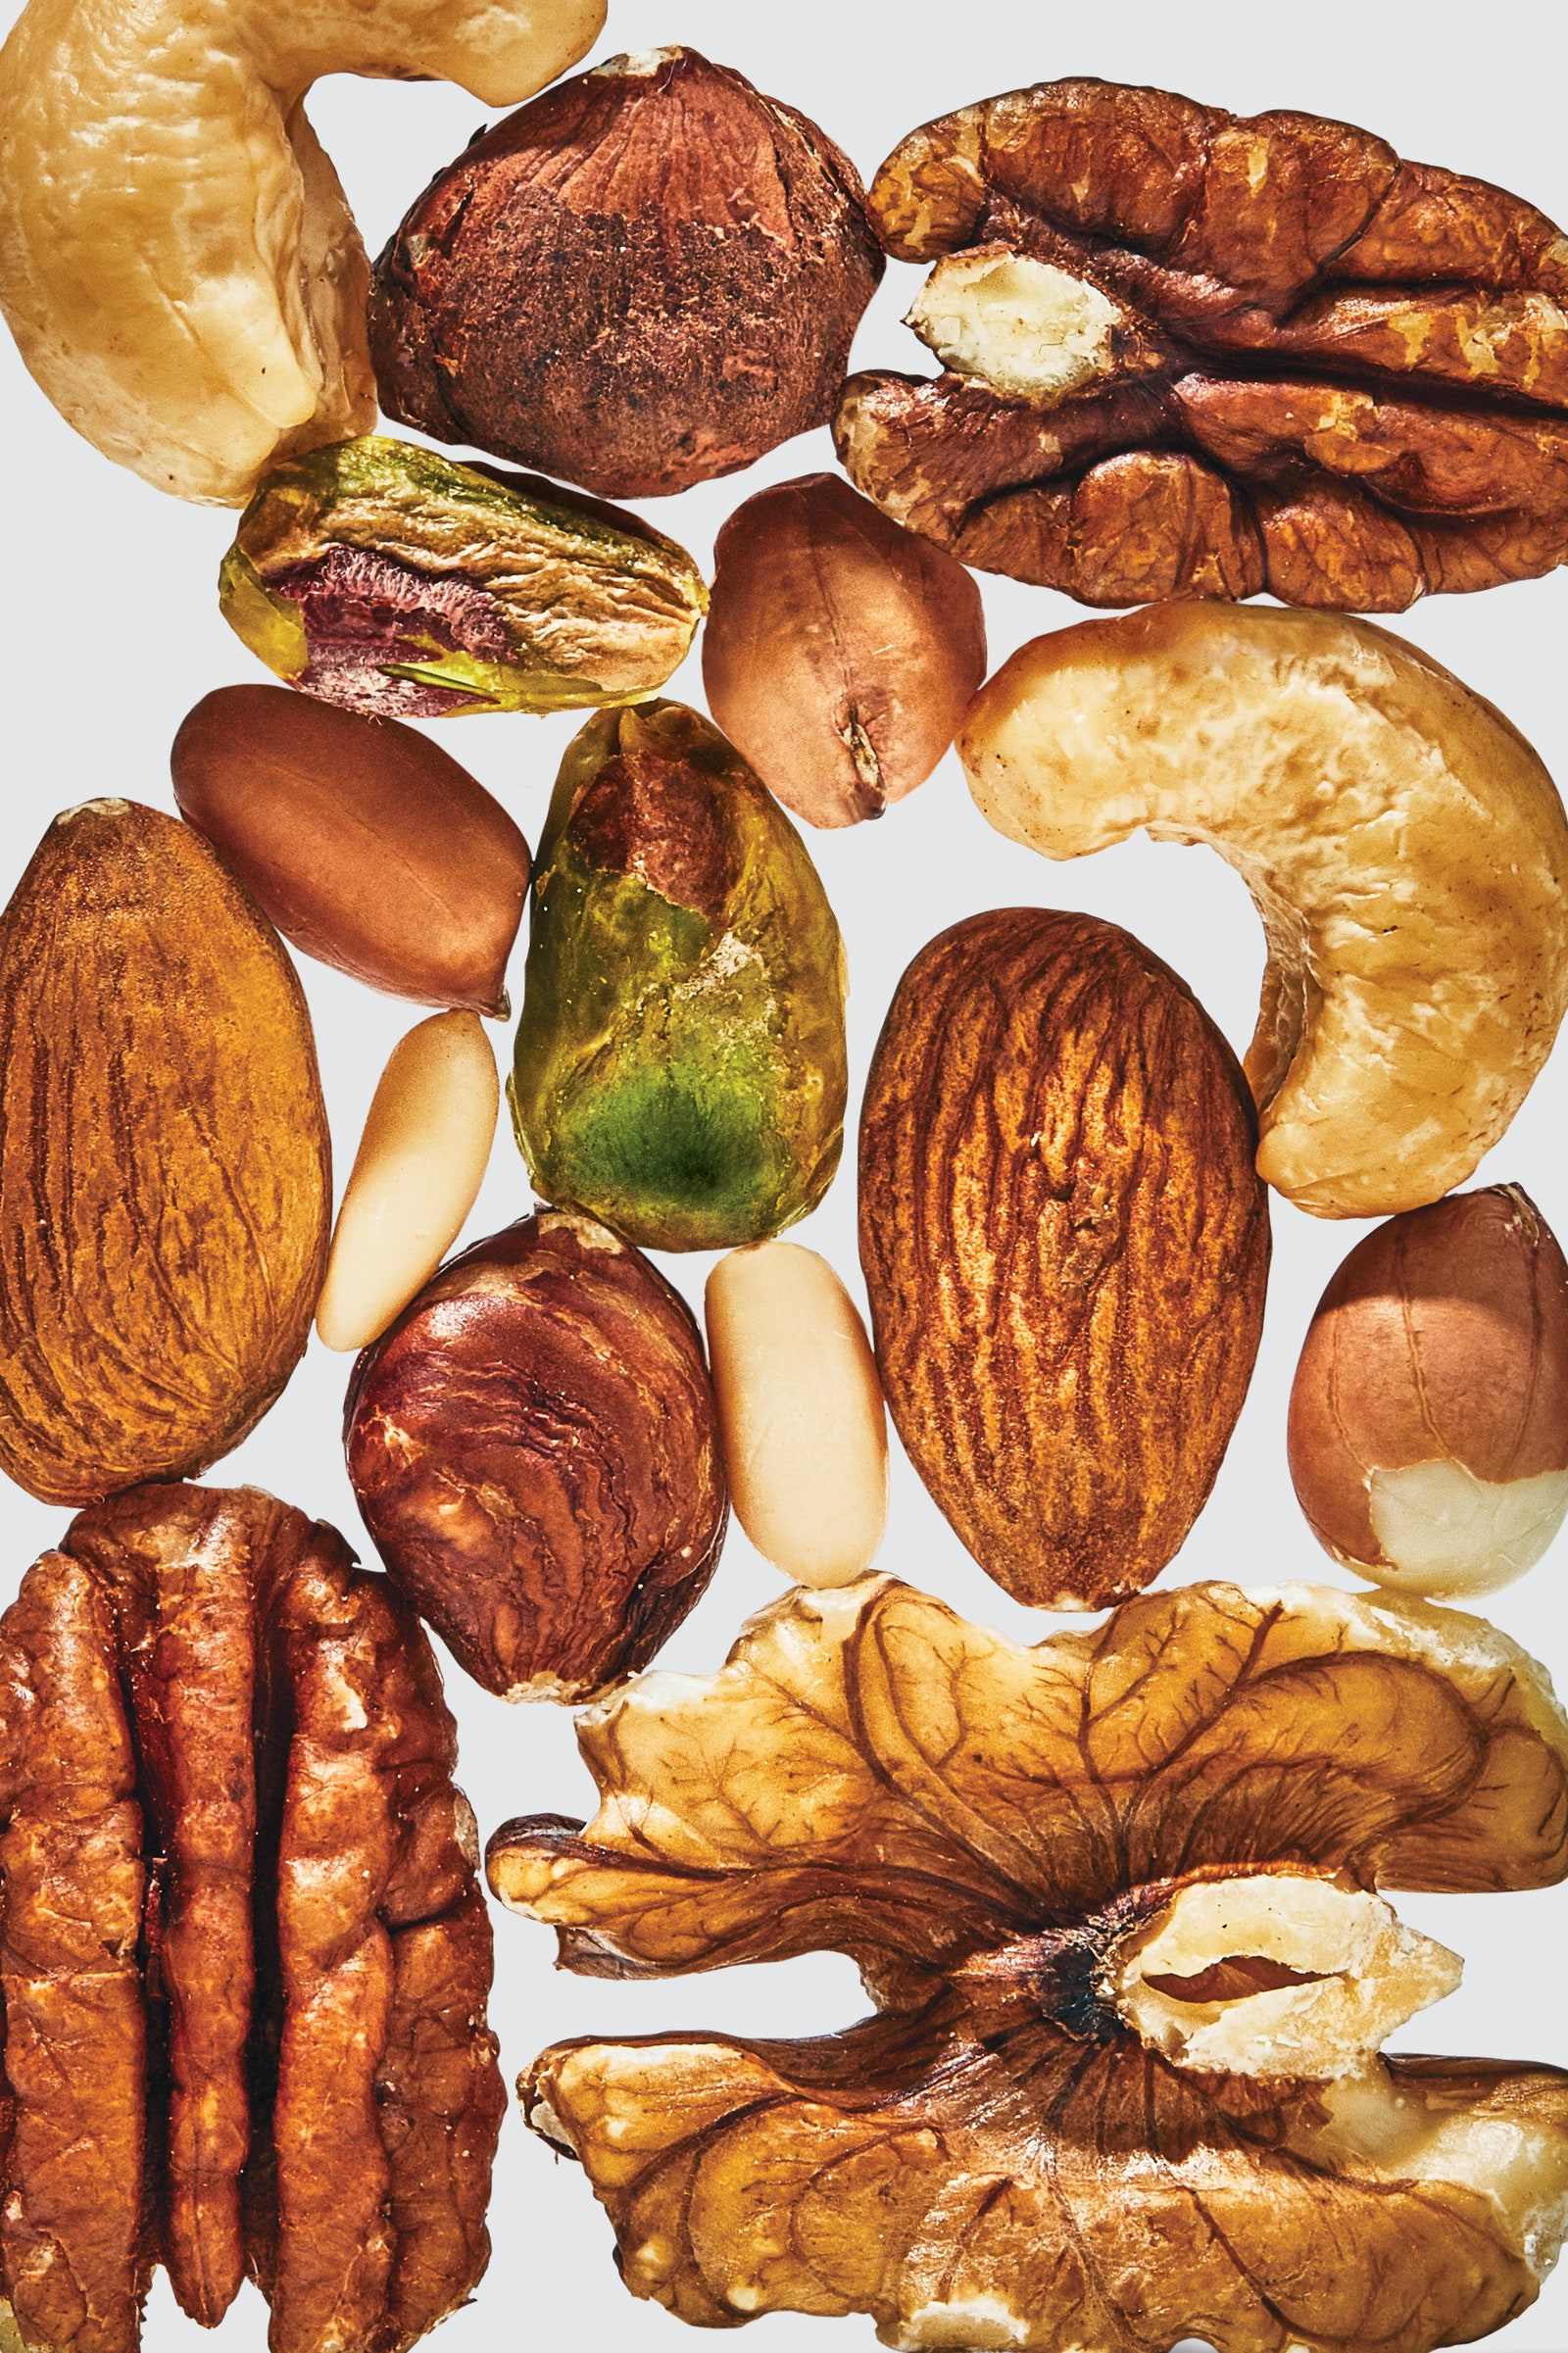 pemIt doesn't stop at almonds Cashews hazelnuts and pistachios also make great mylk.emp